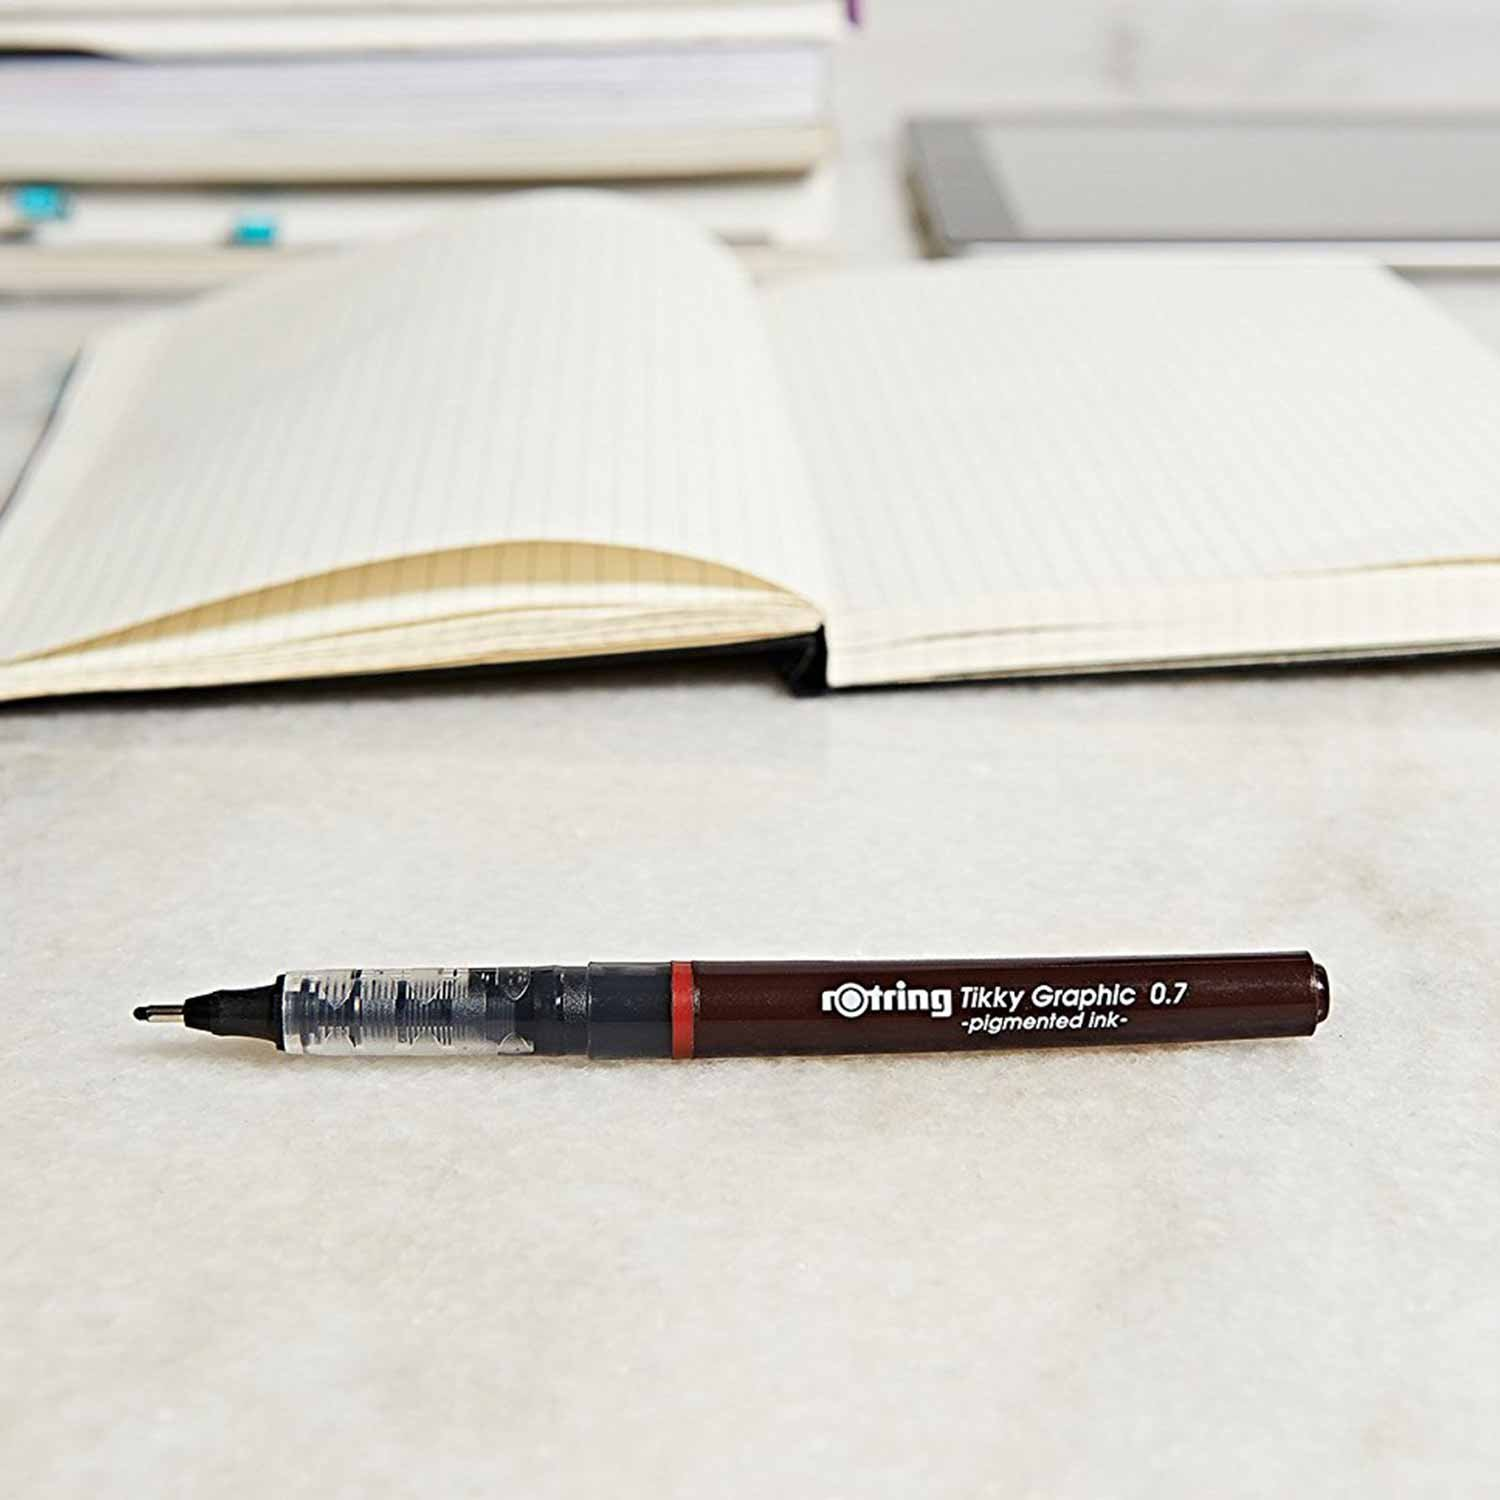 rOtring Tikky Graphic Fineliner Pens, 0.7mm & 0.5mm & 0.3mm, Black Ink, 3 Count by Rotring (Image #9)